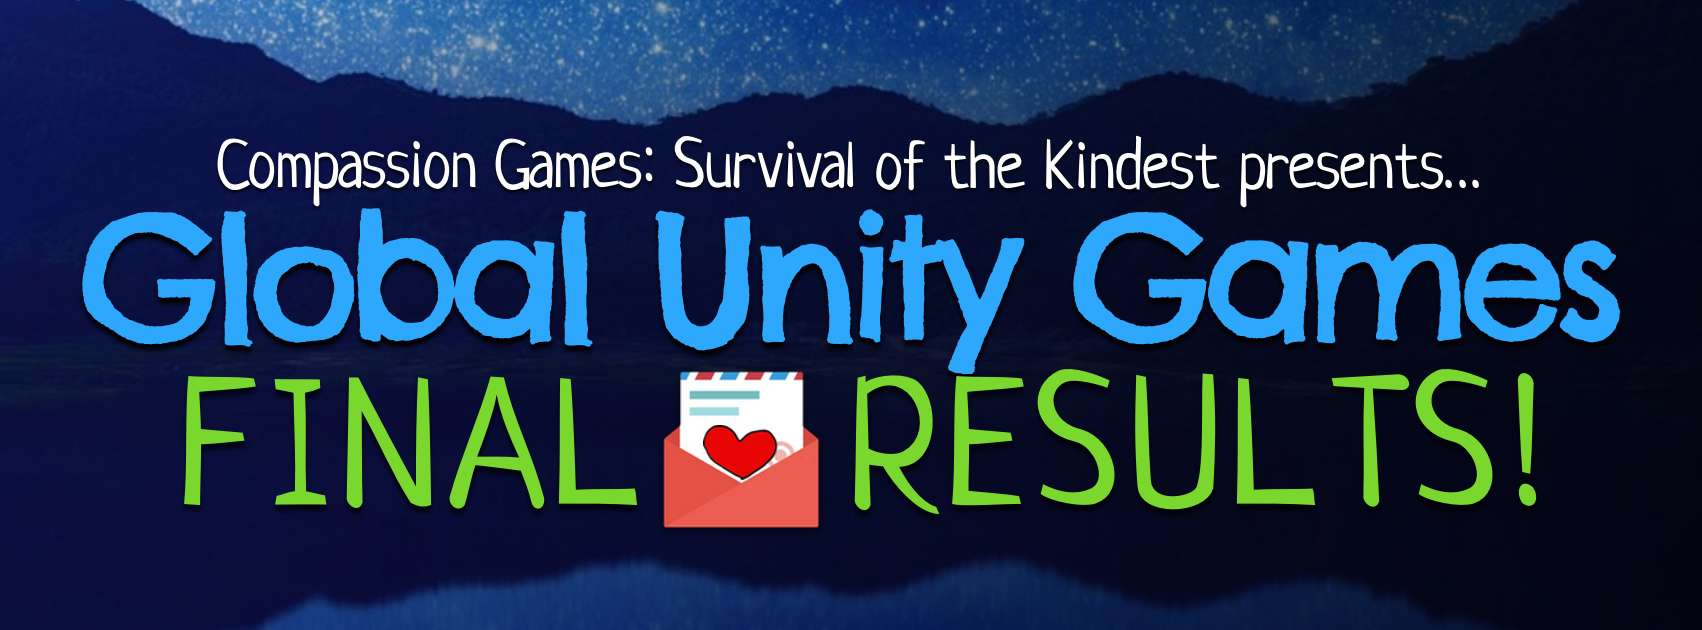 Celebrate the Unbelievable Final Results of the 2016 Global Unity Games